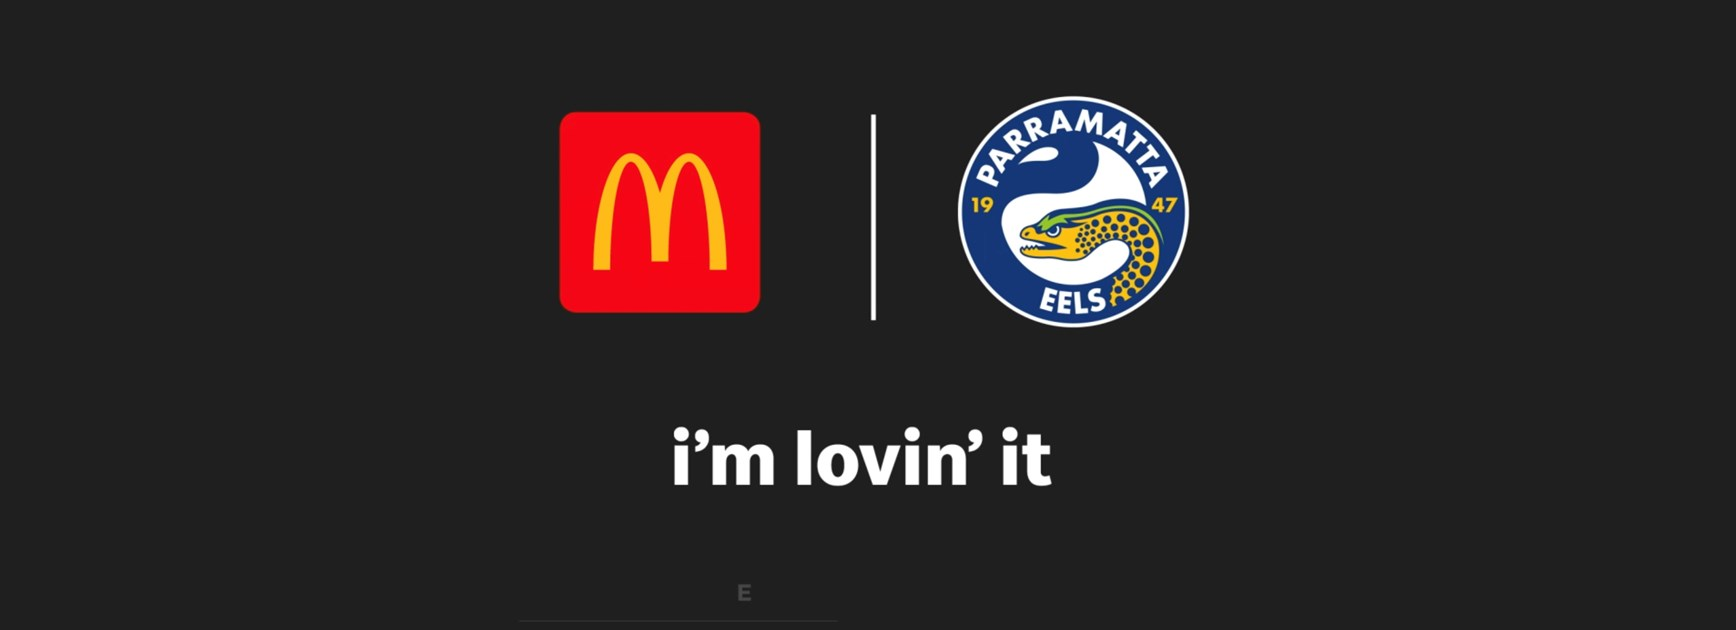 McDonald's joins as the official restaurant partner of the Parramatta Eels